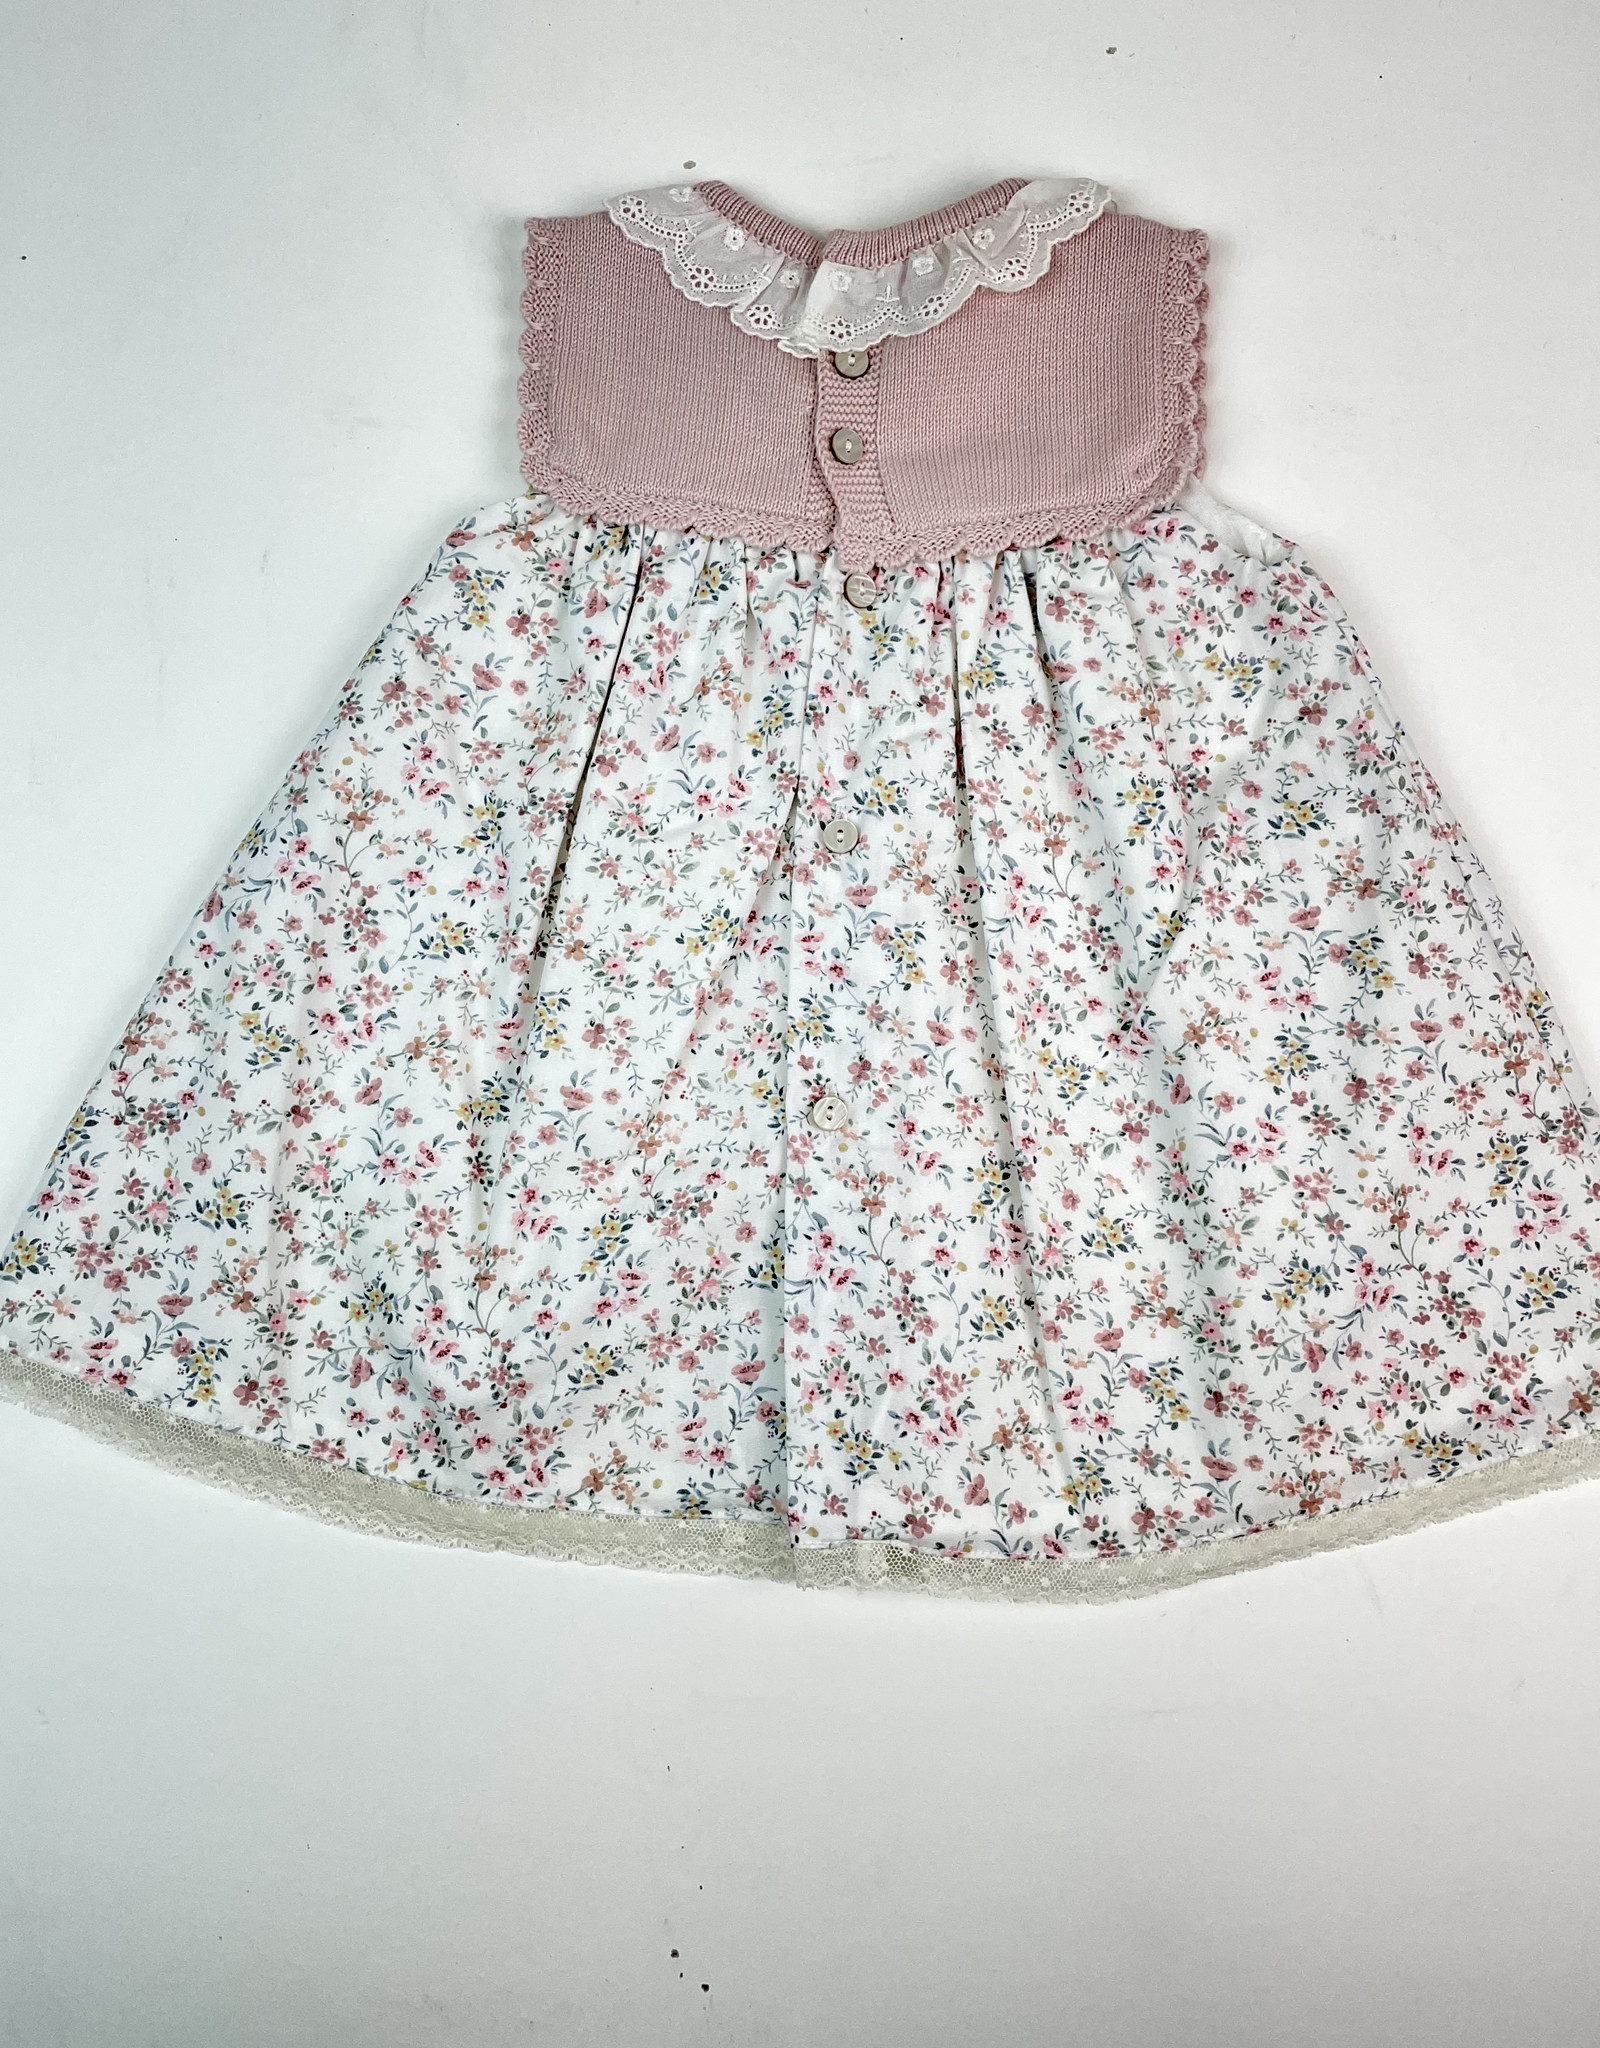 Martin Aranda Dress Rose knit top Pink floral skirt